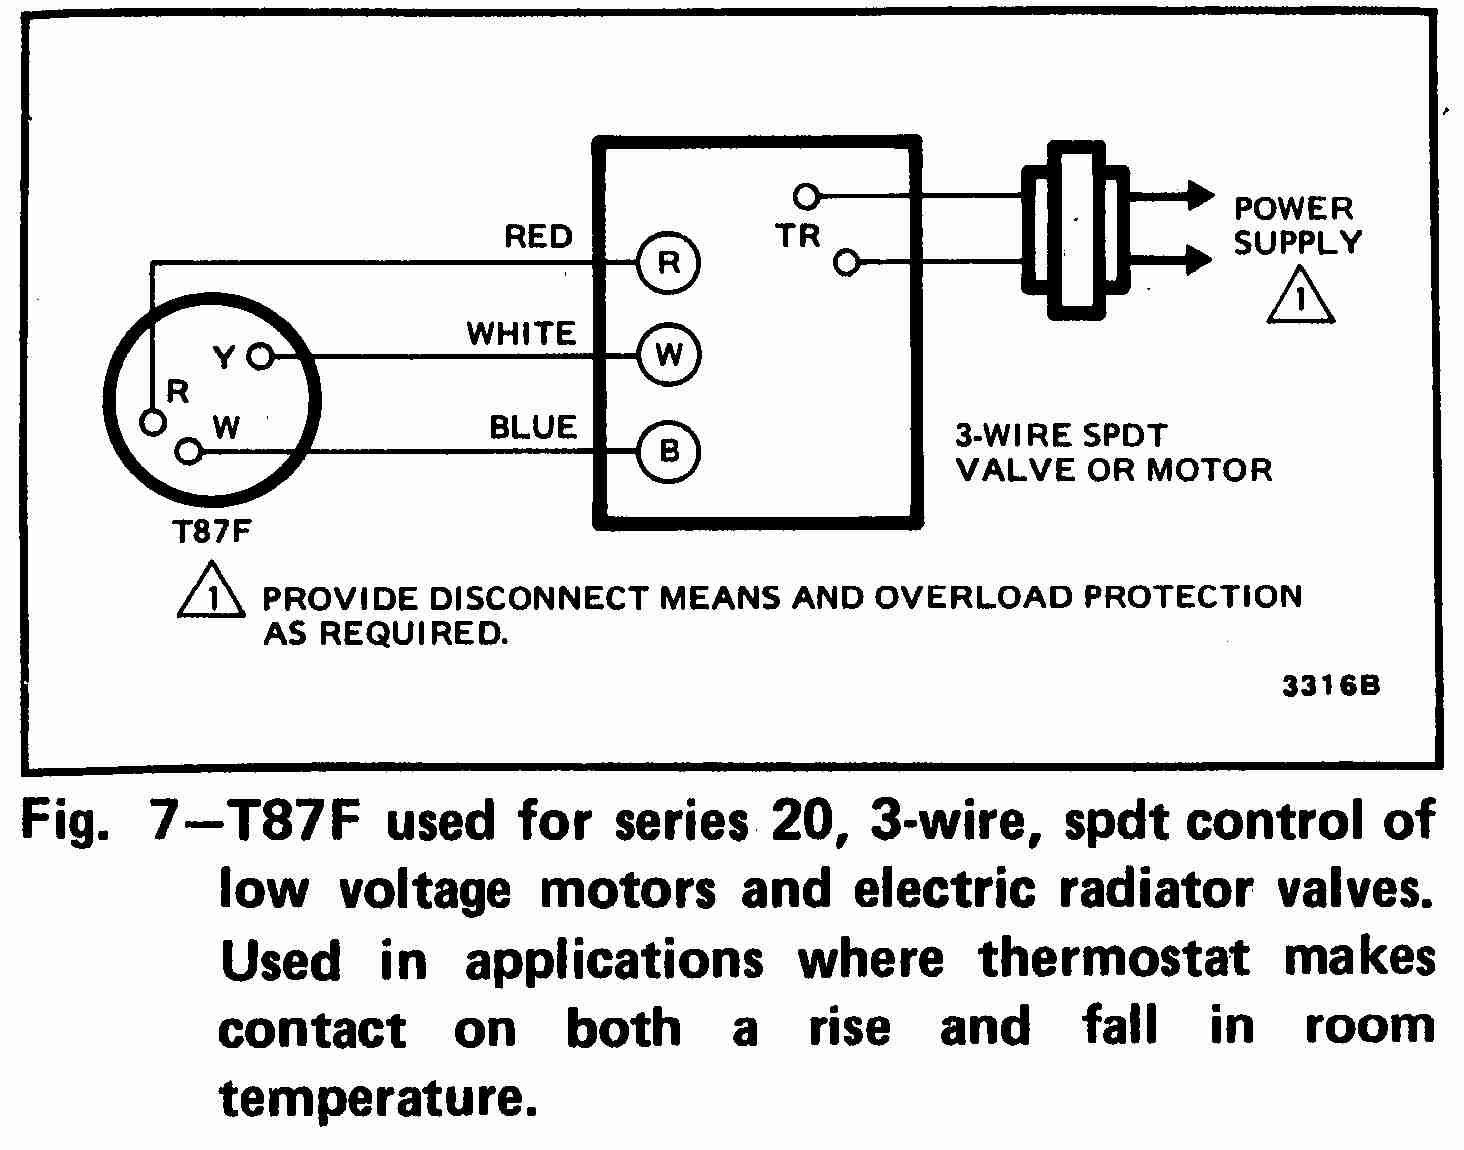 hight resolution of 2 wire thermostat wiring diagram heat only wiring diagram explained typical thermostat wiring diagram 2 wire